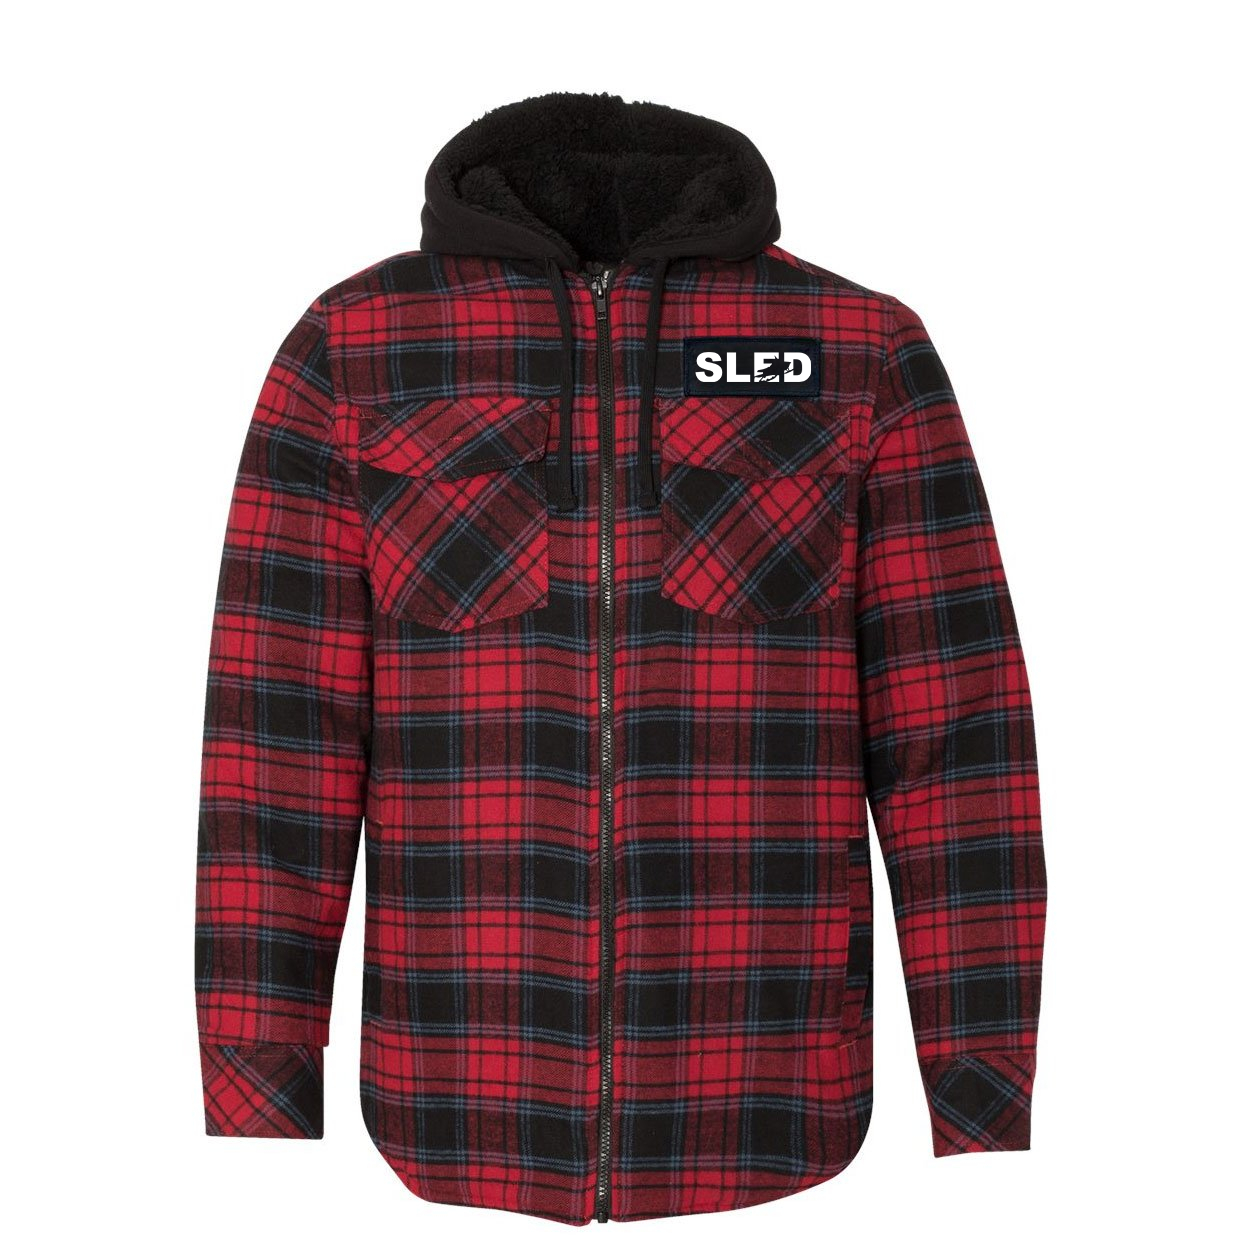 Sled Snowmobile Logo Classic Unisex Full Zip Woven Patch Hooded Flannel Jacket Red/Black Buffalo (White Logo)